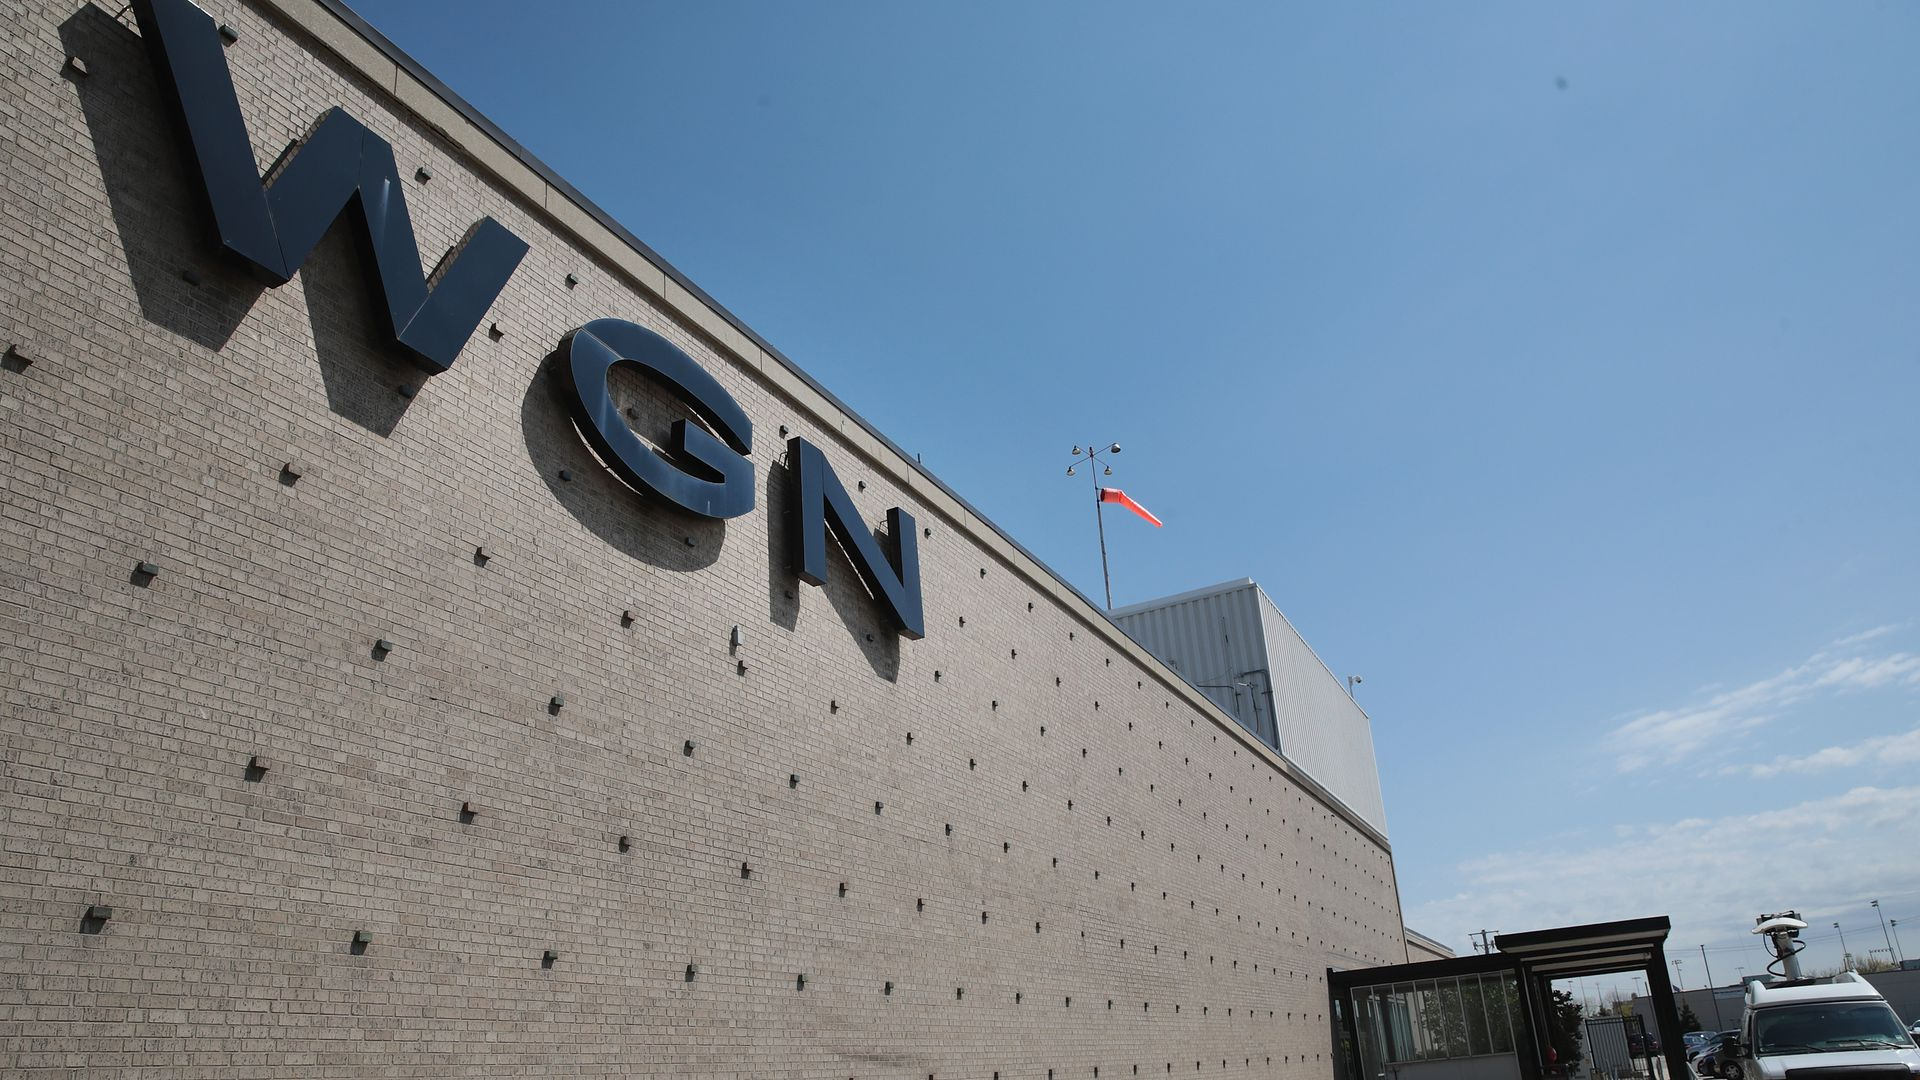 Signage for Chicago station WGN on the side of a building